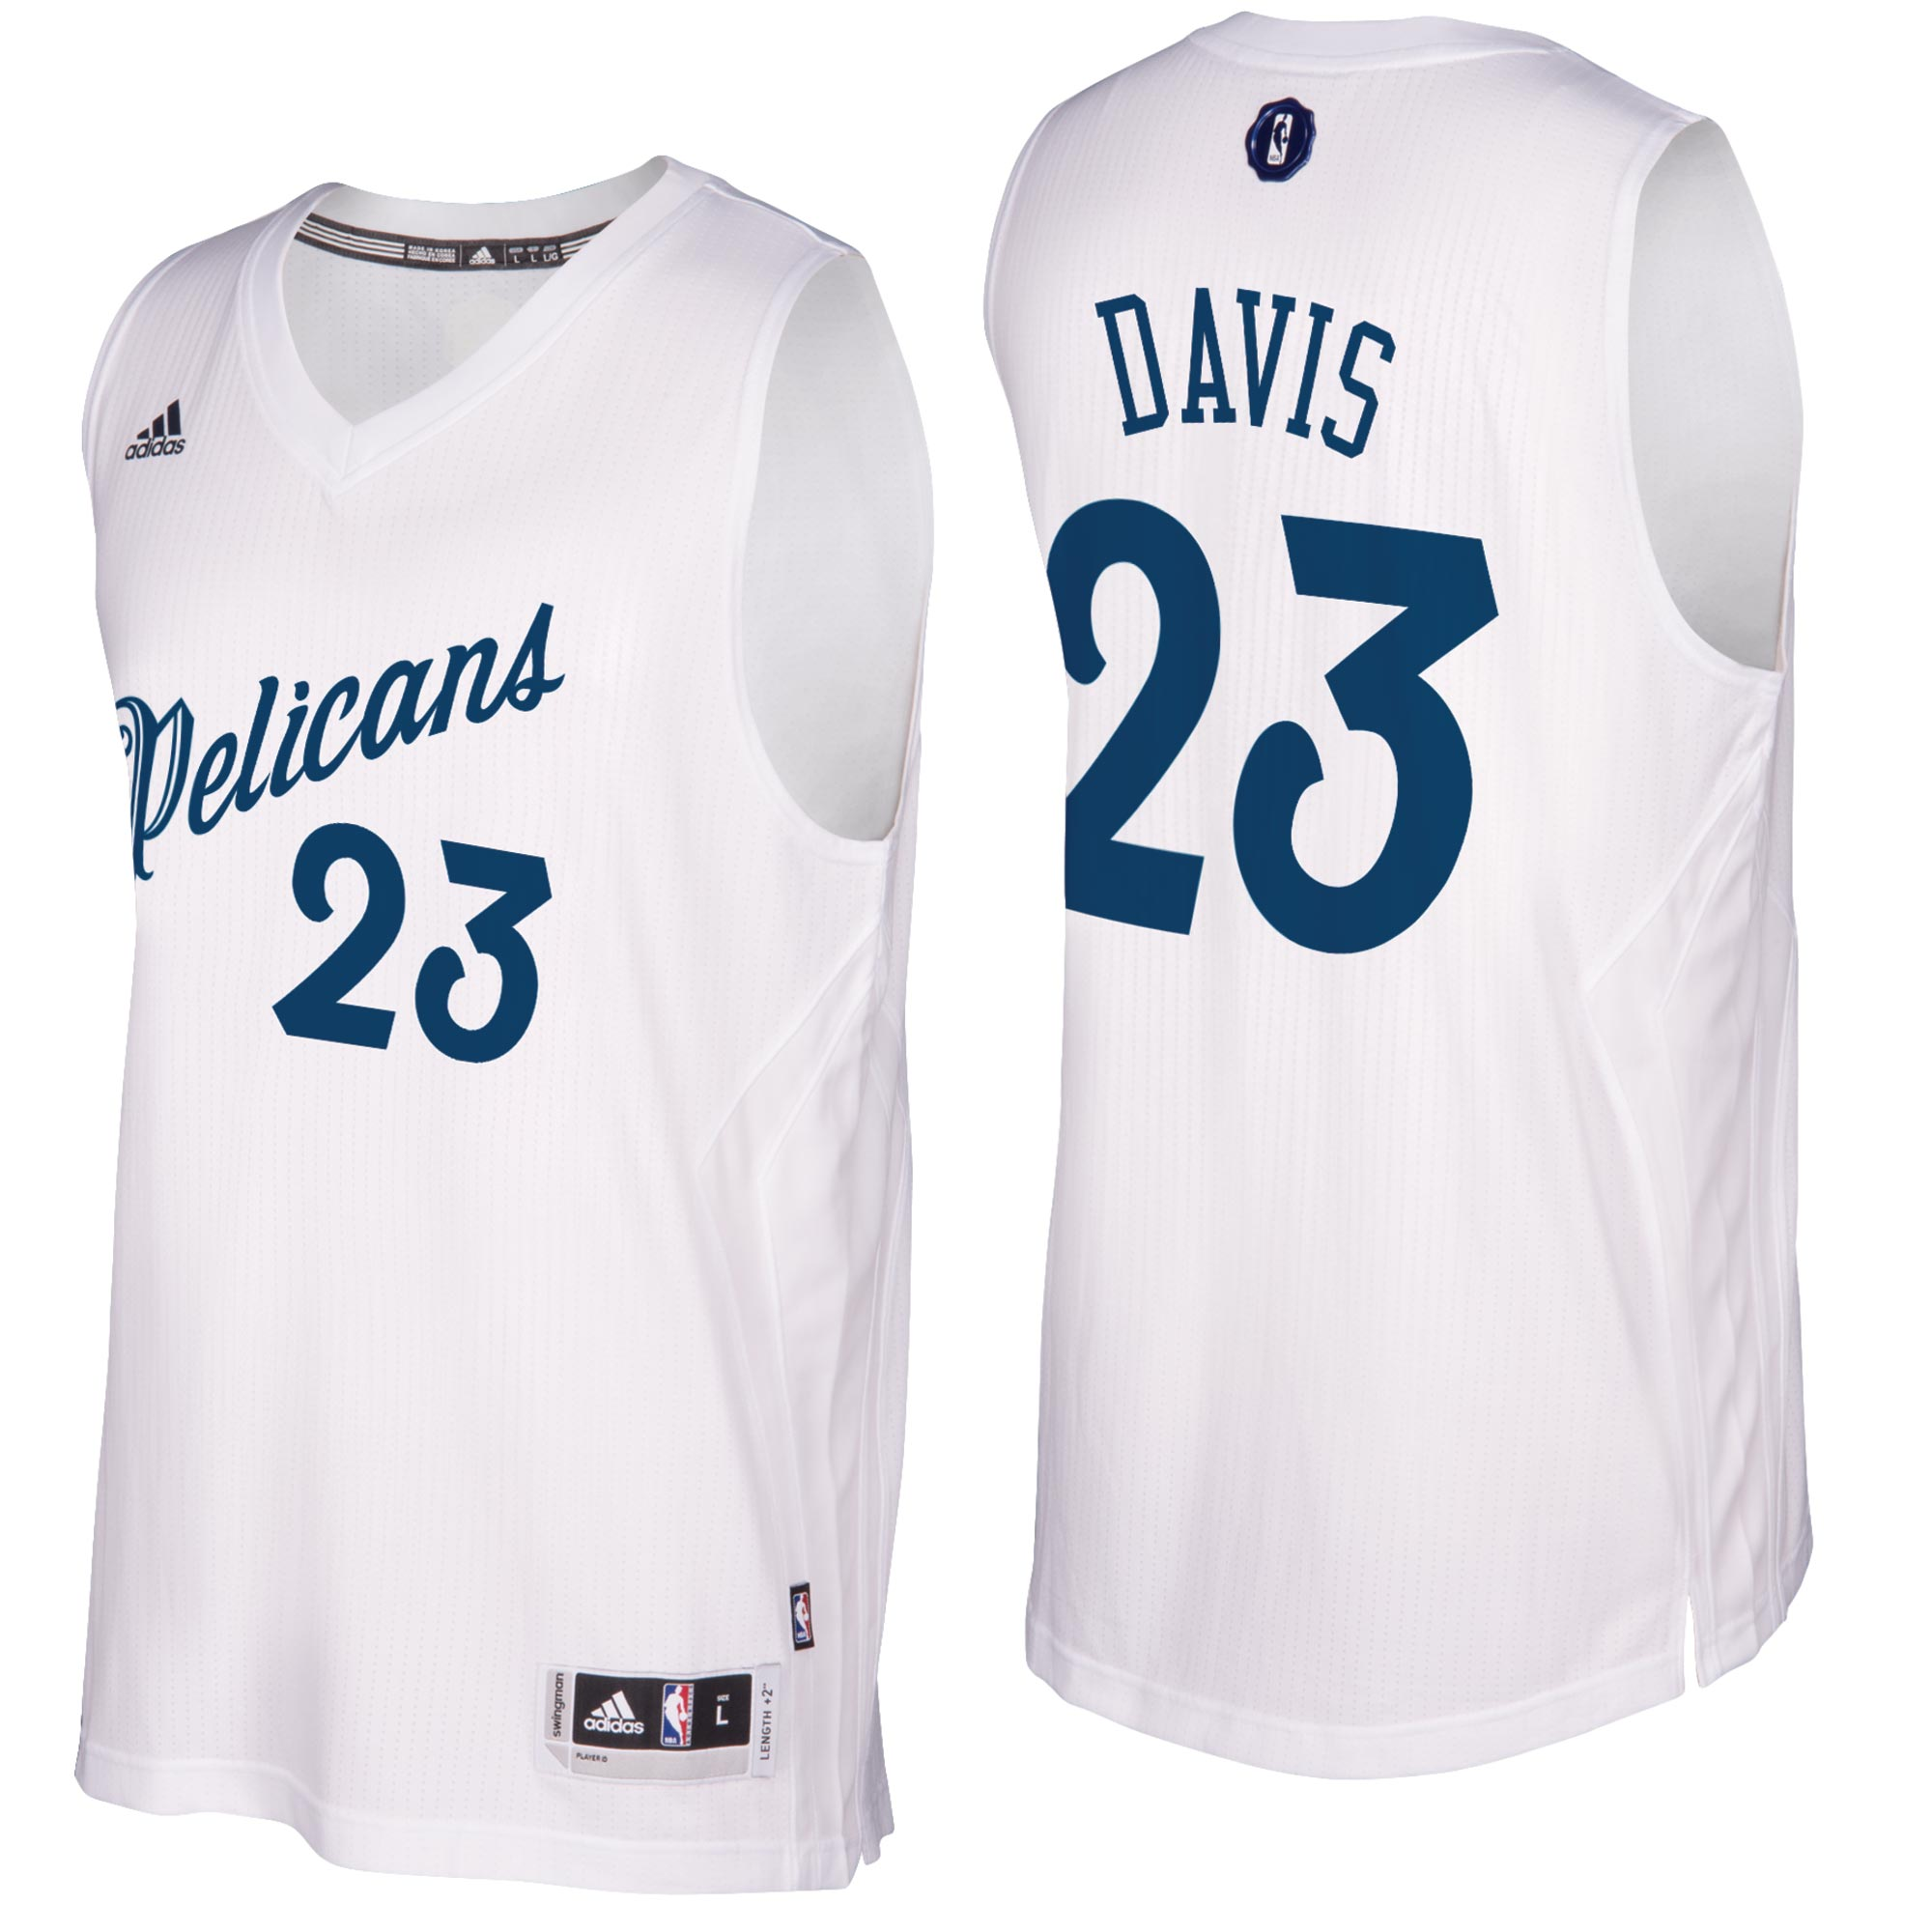 New Orleans Pelicans Christmas Day Swingman Jersey 2016 - Anthony Davi